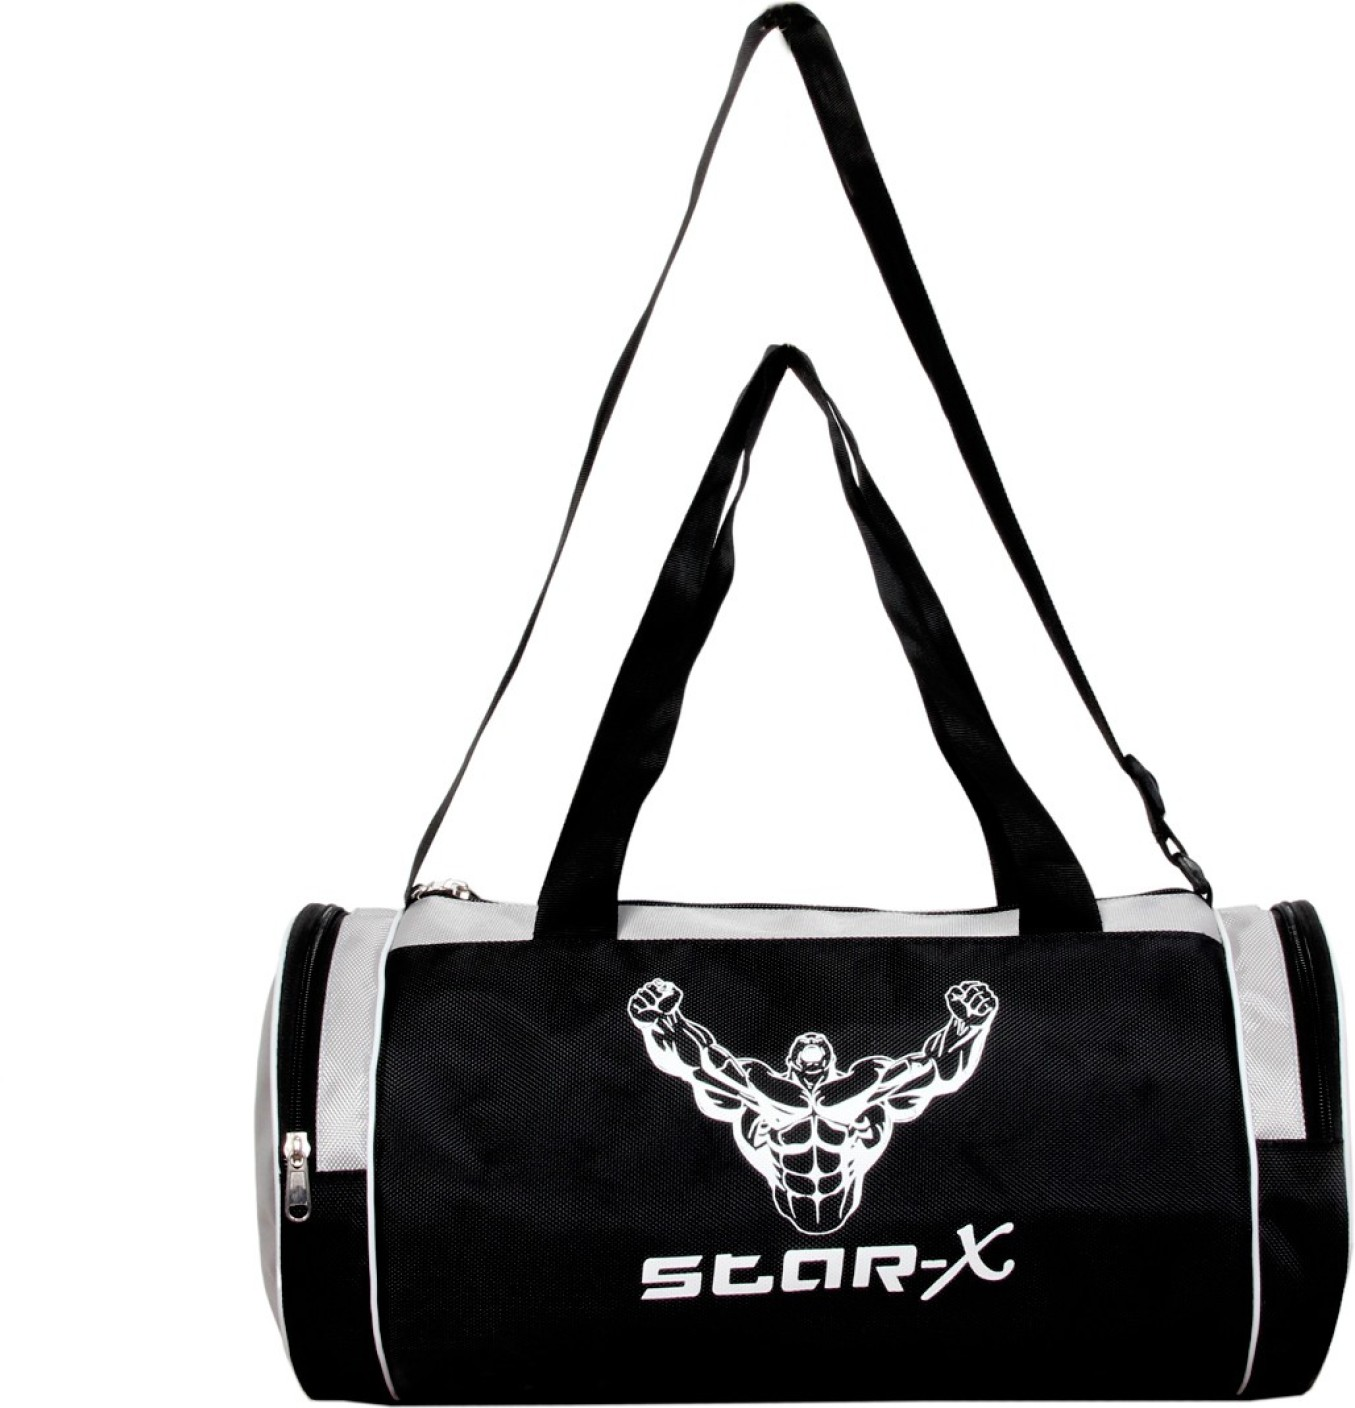 Gym Bag Flipkart: Buy Star X Stamina Gb-1400 Online